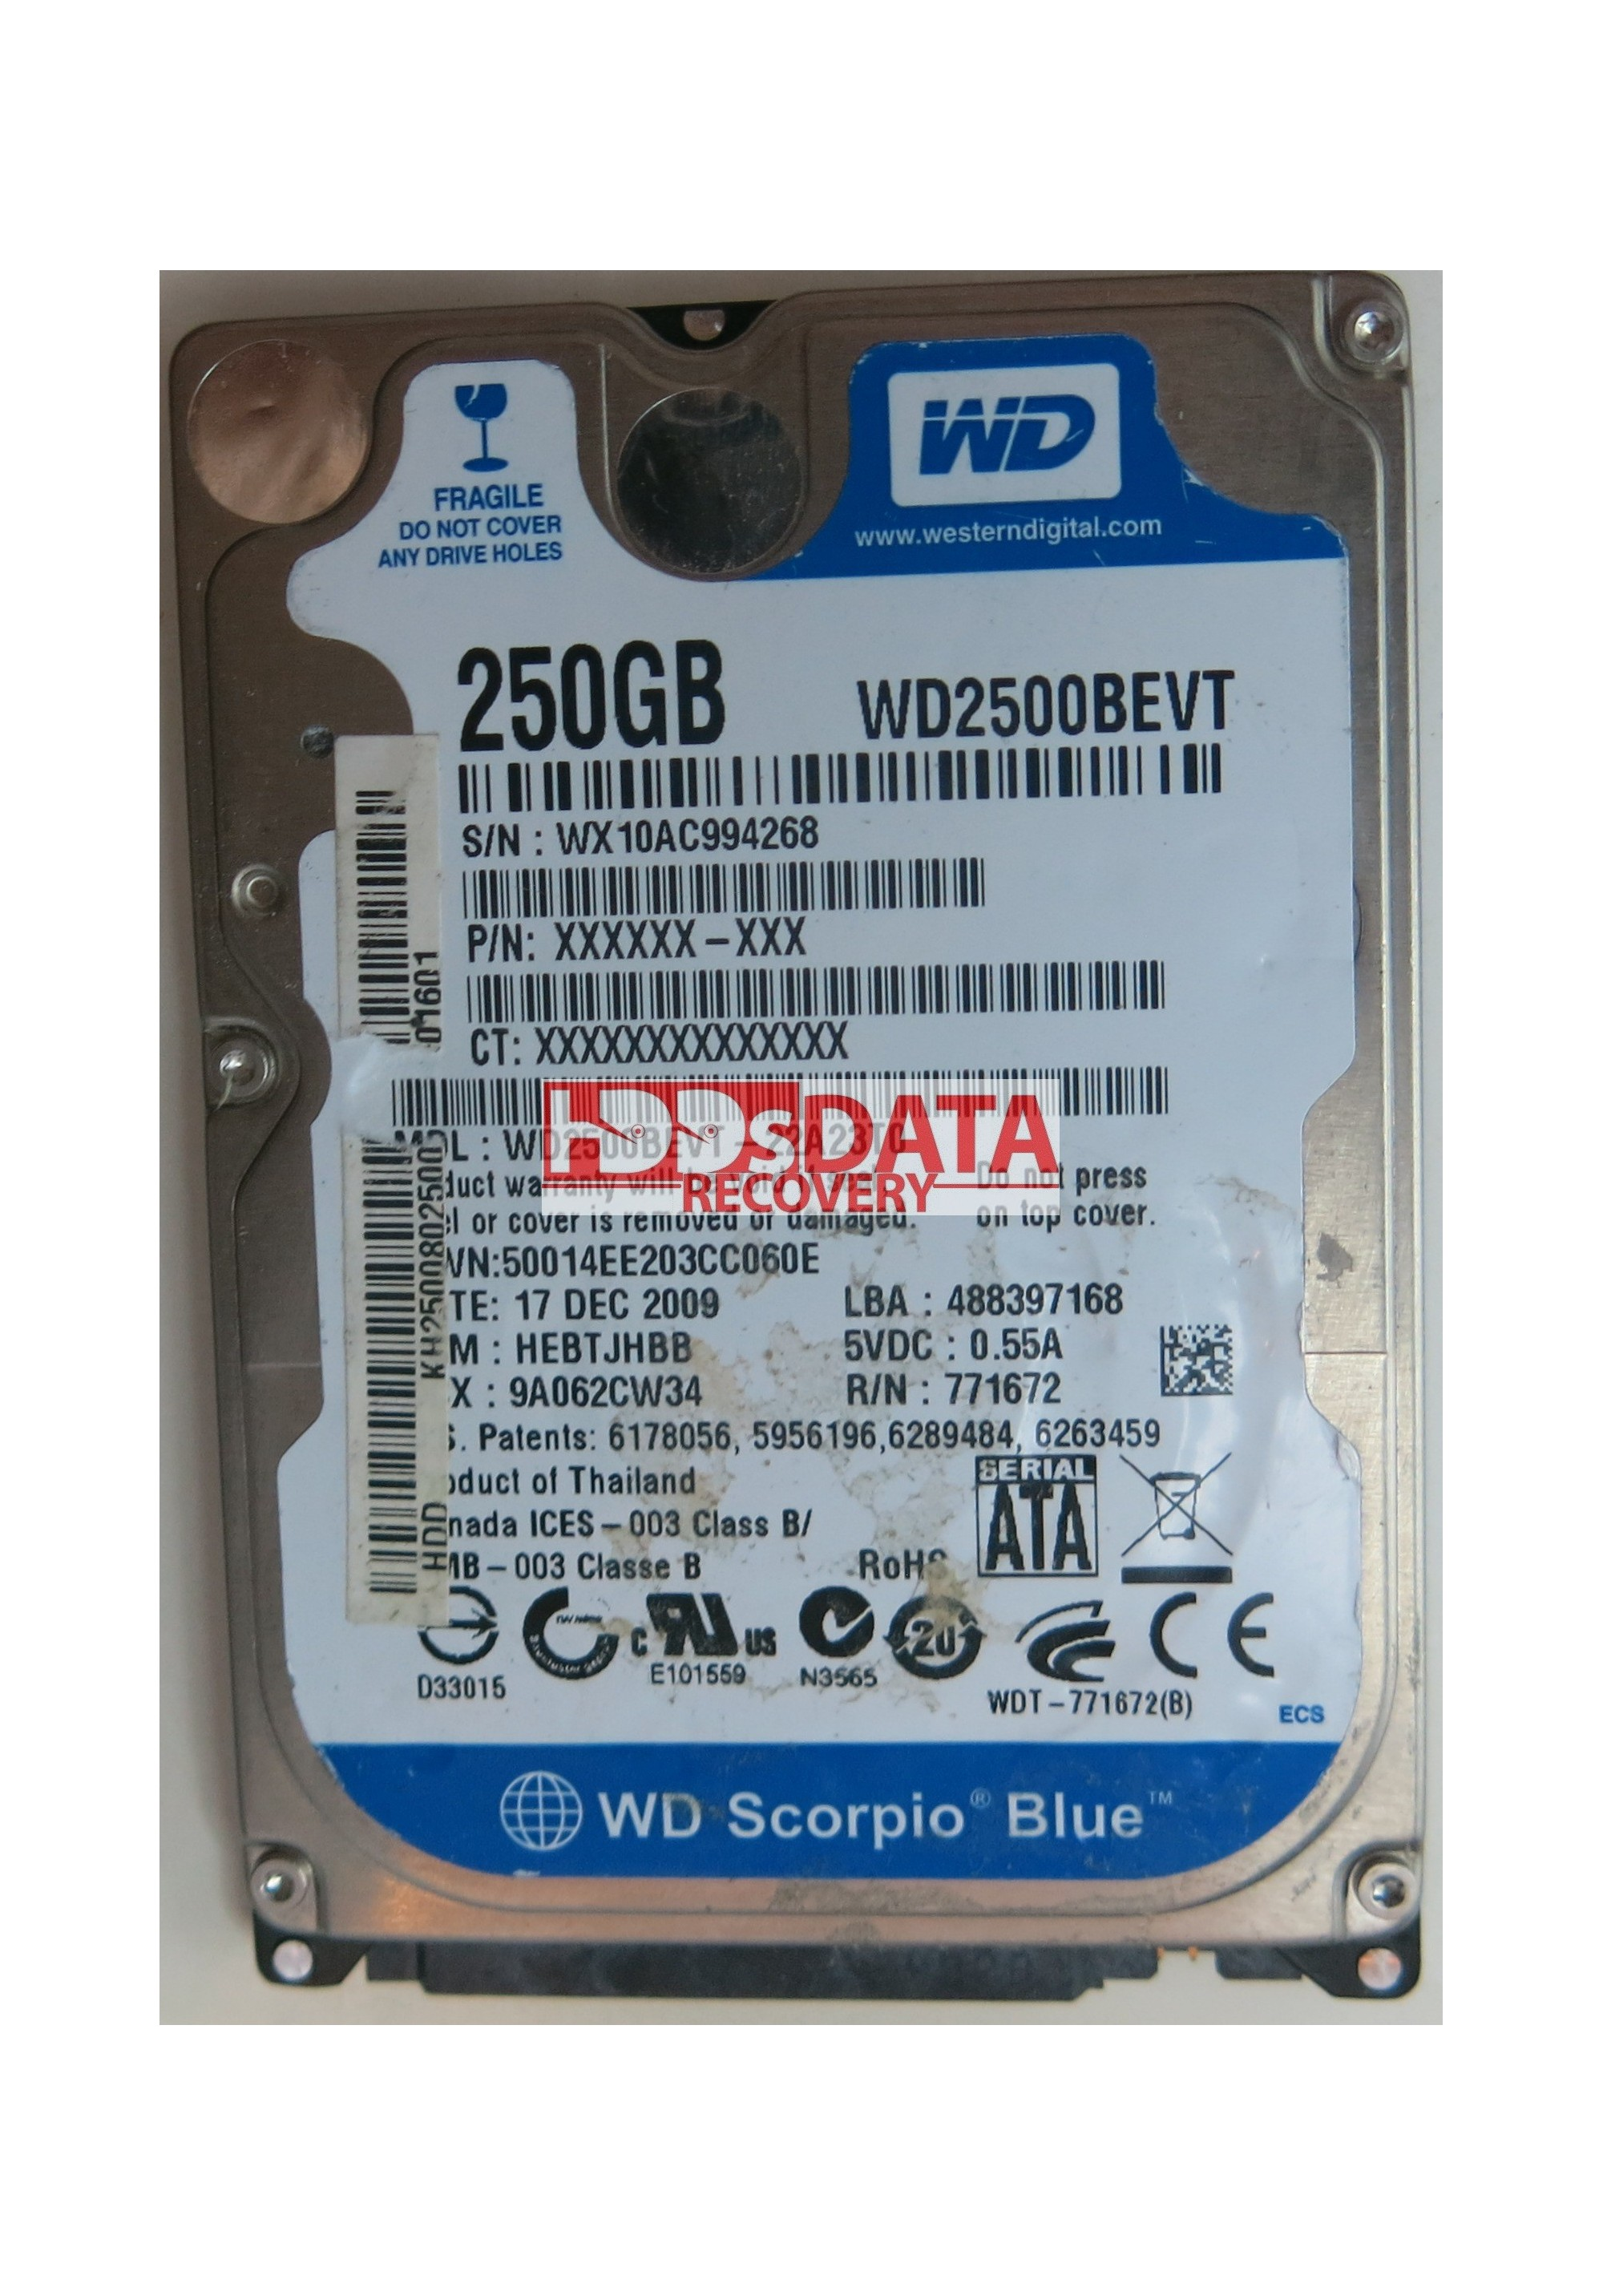 WESTERN DIGITAL WD2500BEVT DRIVERS FOR WINDOWS 7